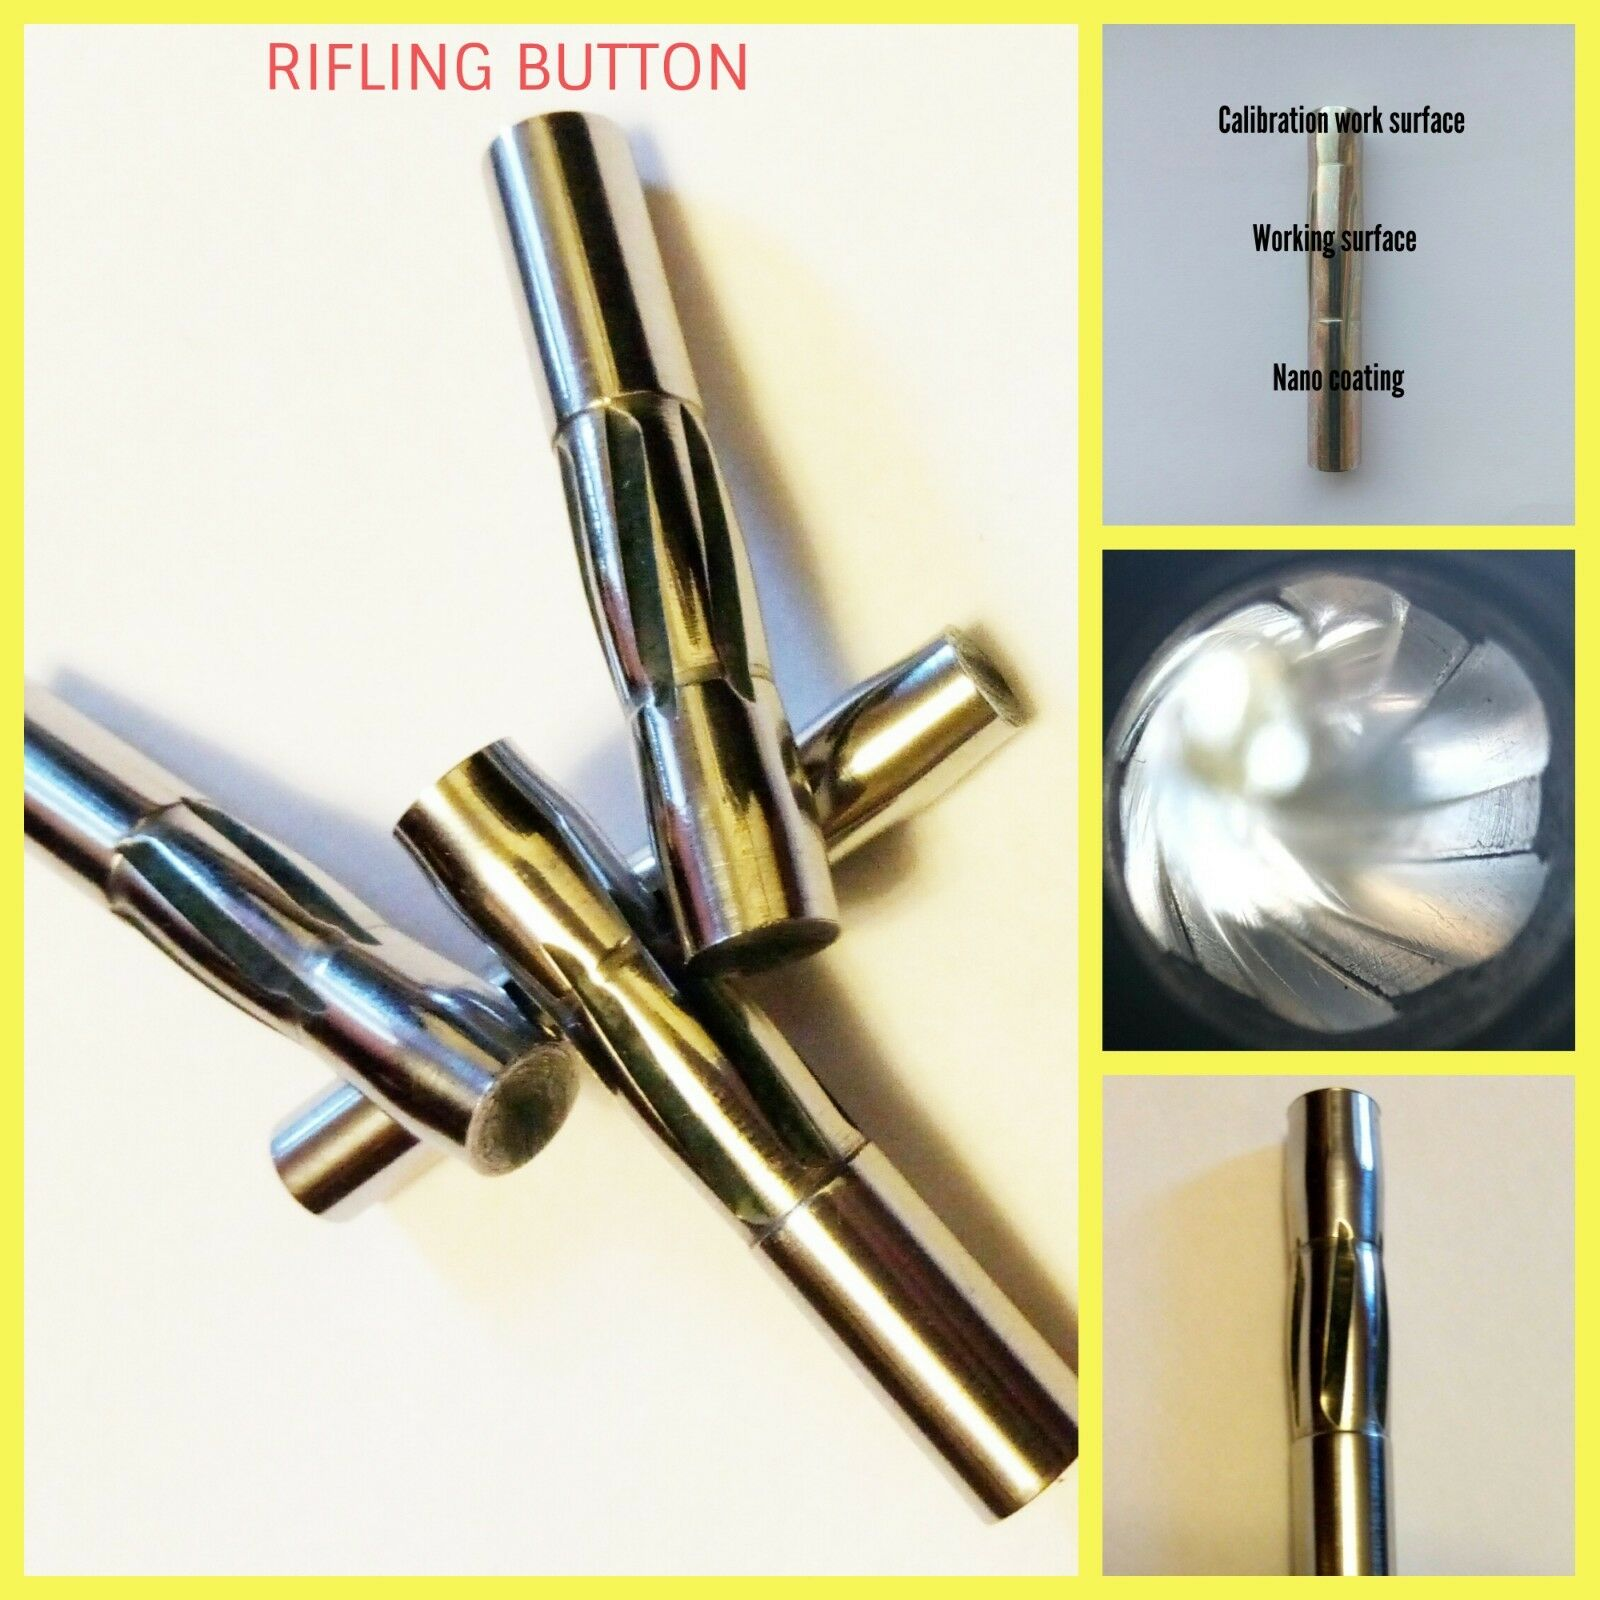 s l1600 1 1 - Rifling button combo 38 Smith & Wesson